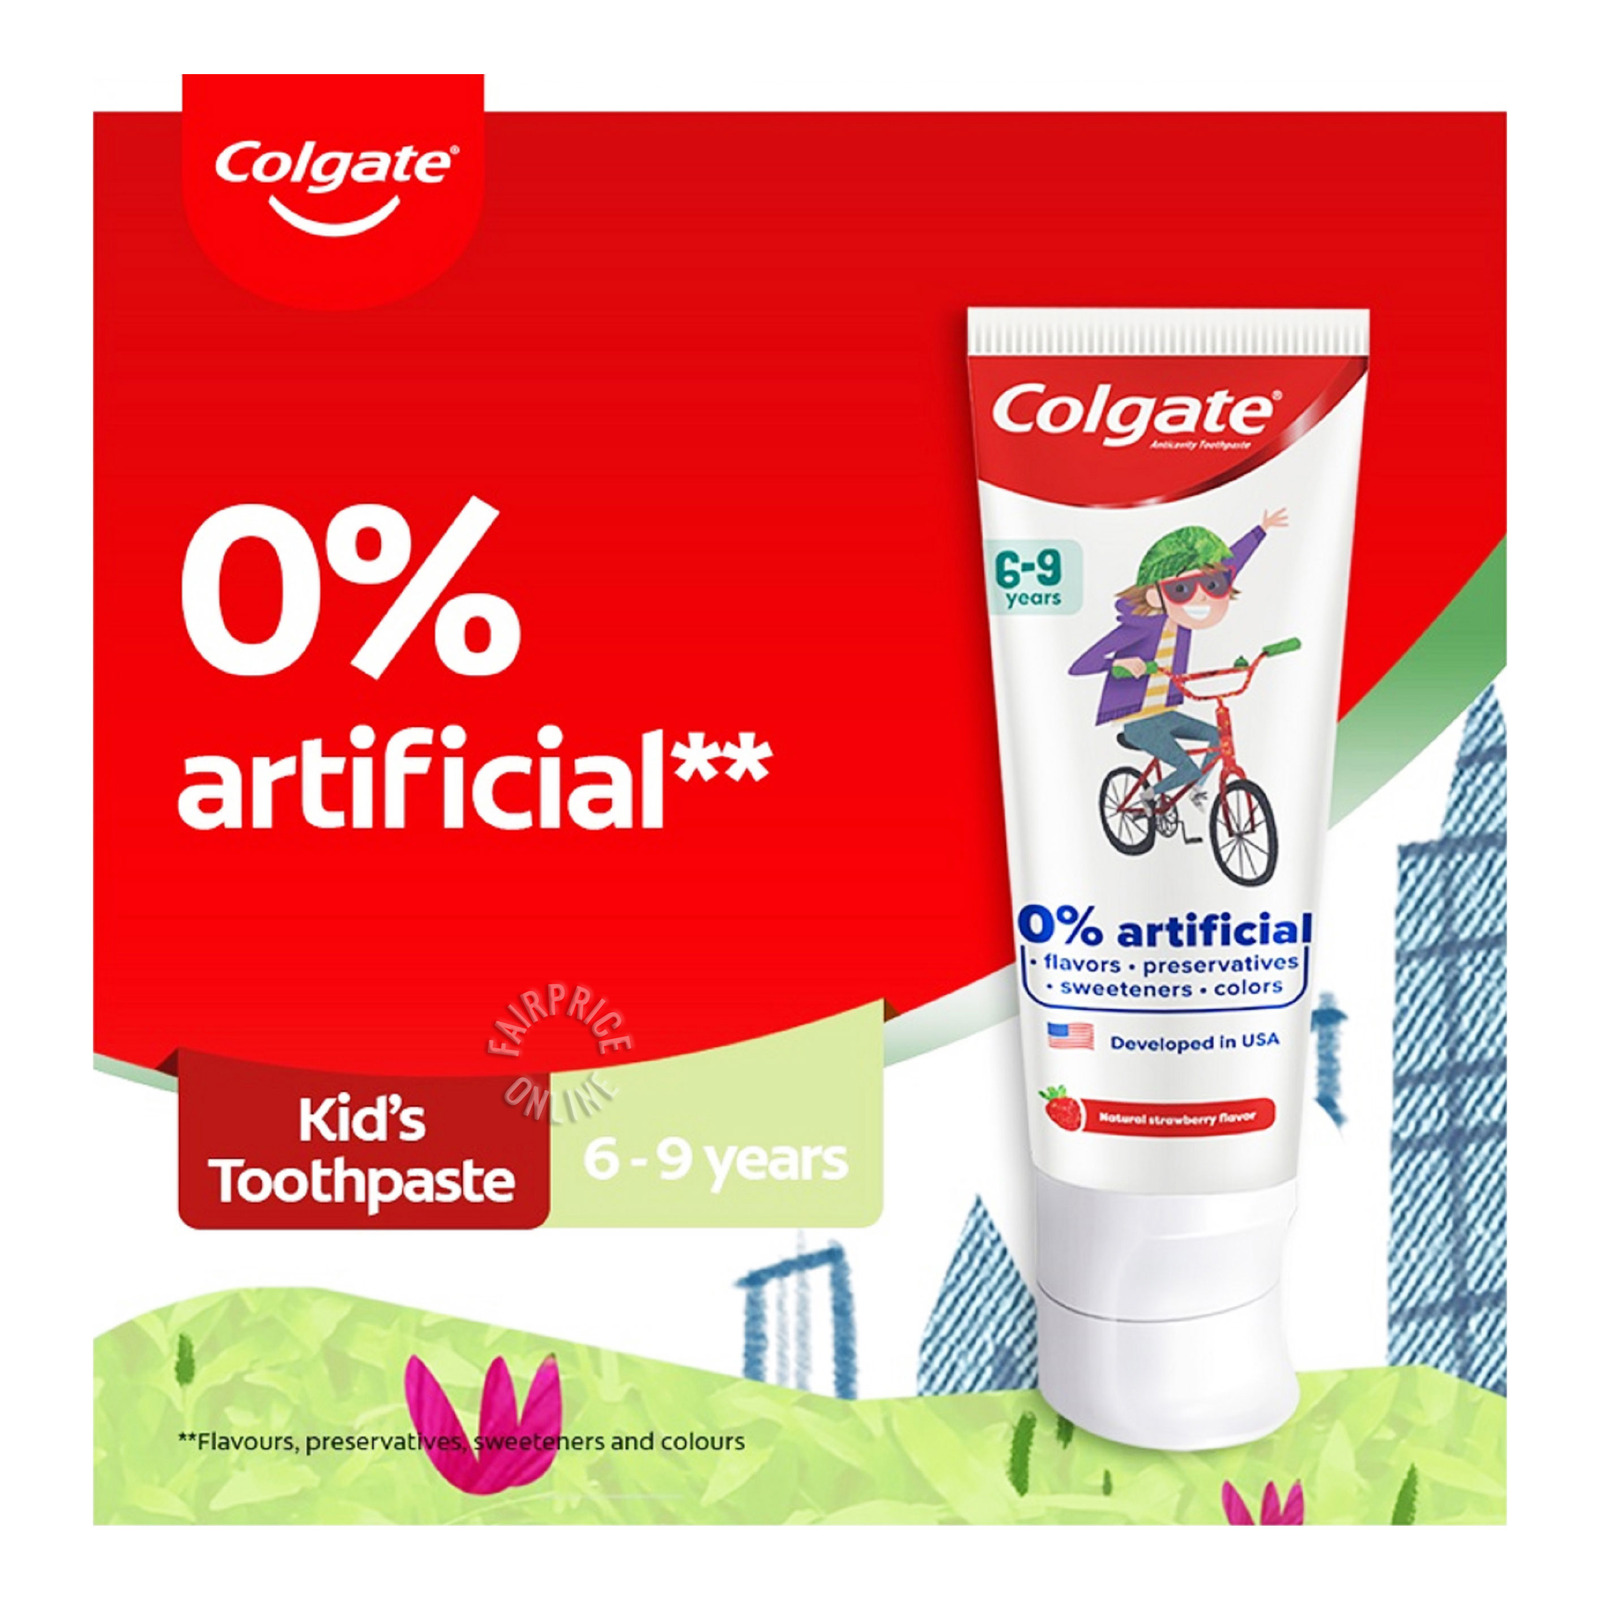 Colgate Kids Toothpaste - Natural Strawberry Mint (6 - 9 Years)